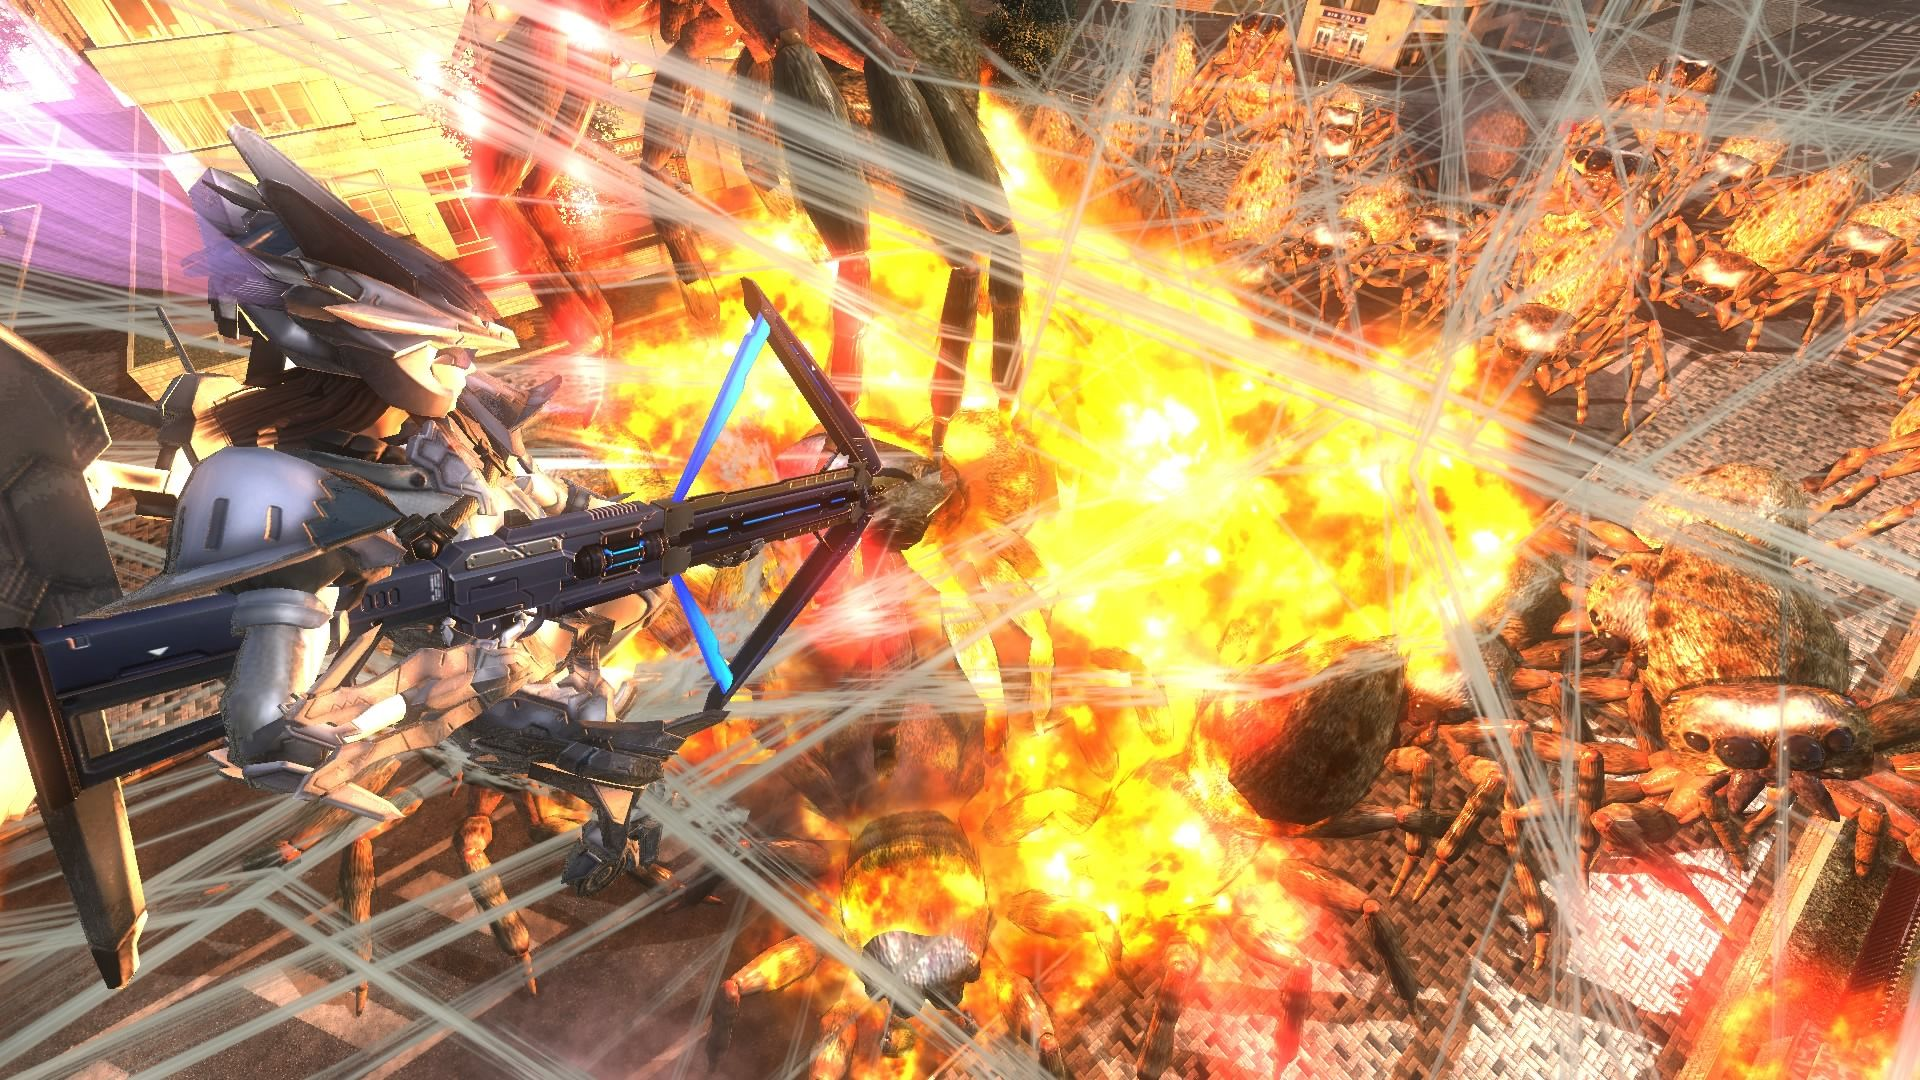 EARTH DEFENSE FORCE 4.1 The Shadow of New Despair +DLCs 2019